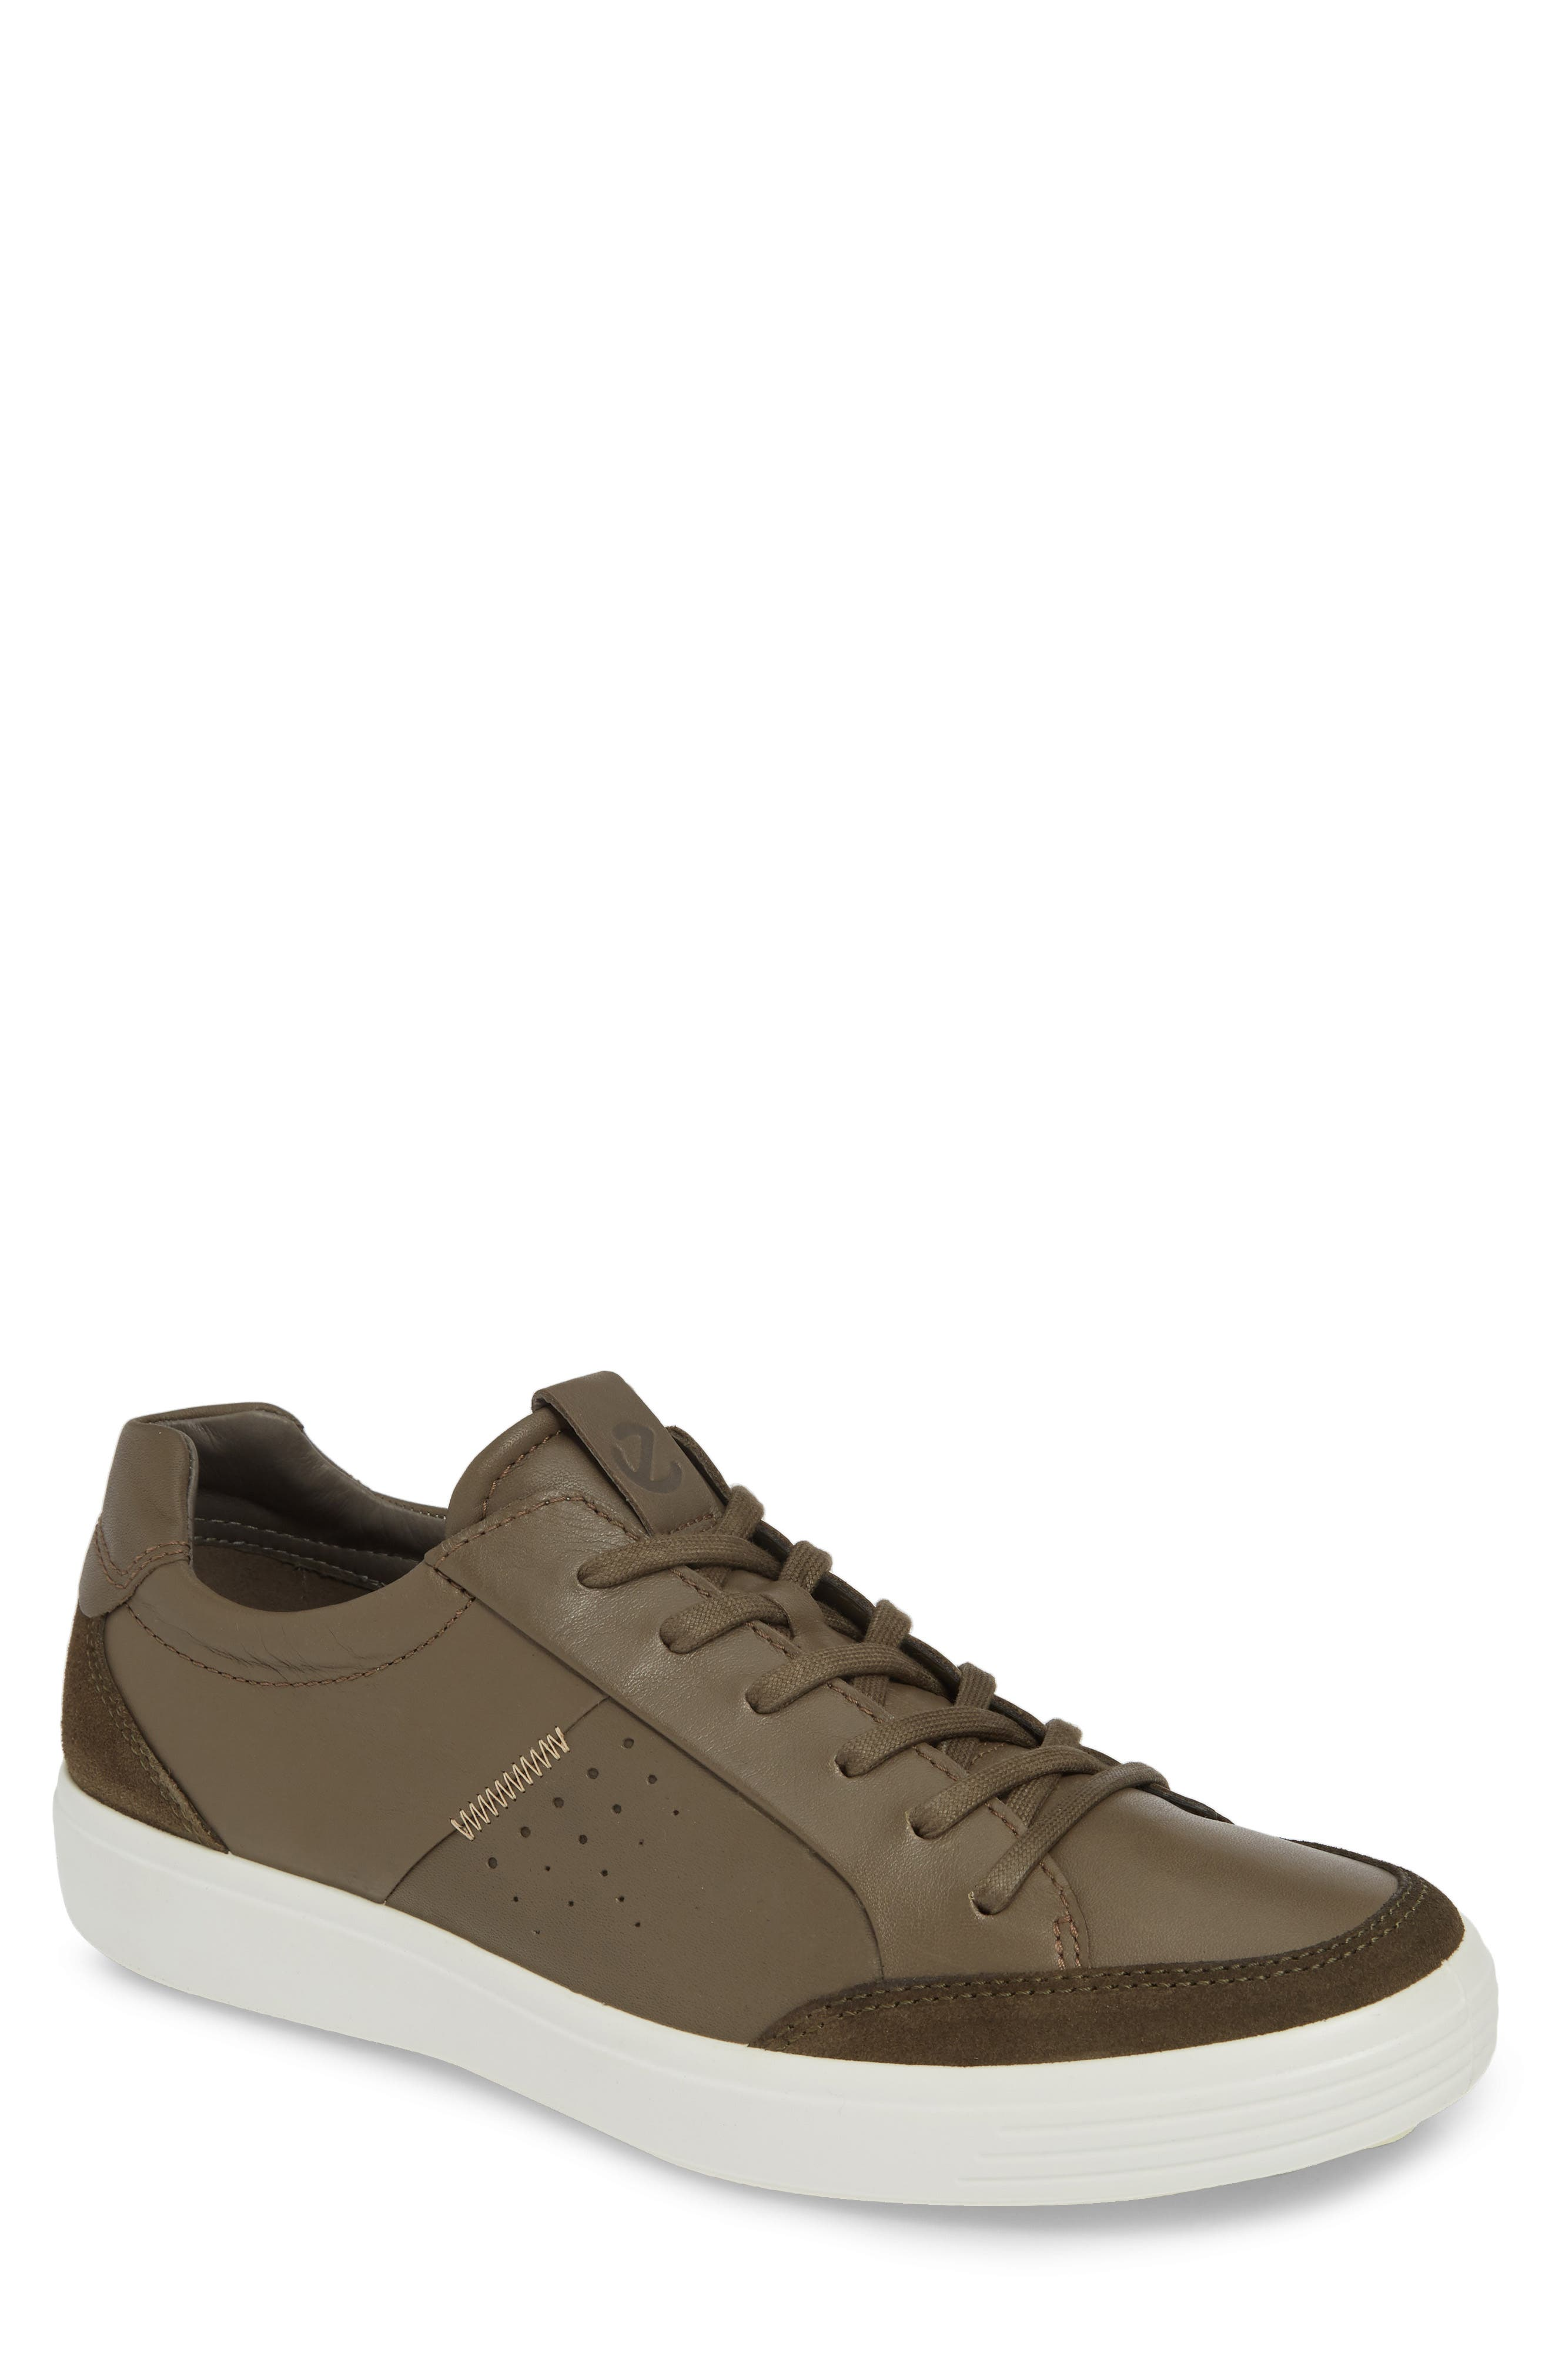 1168db3477bc58 Ecco Soft 7 Relaxed Sneaker - Brown